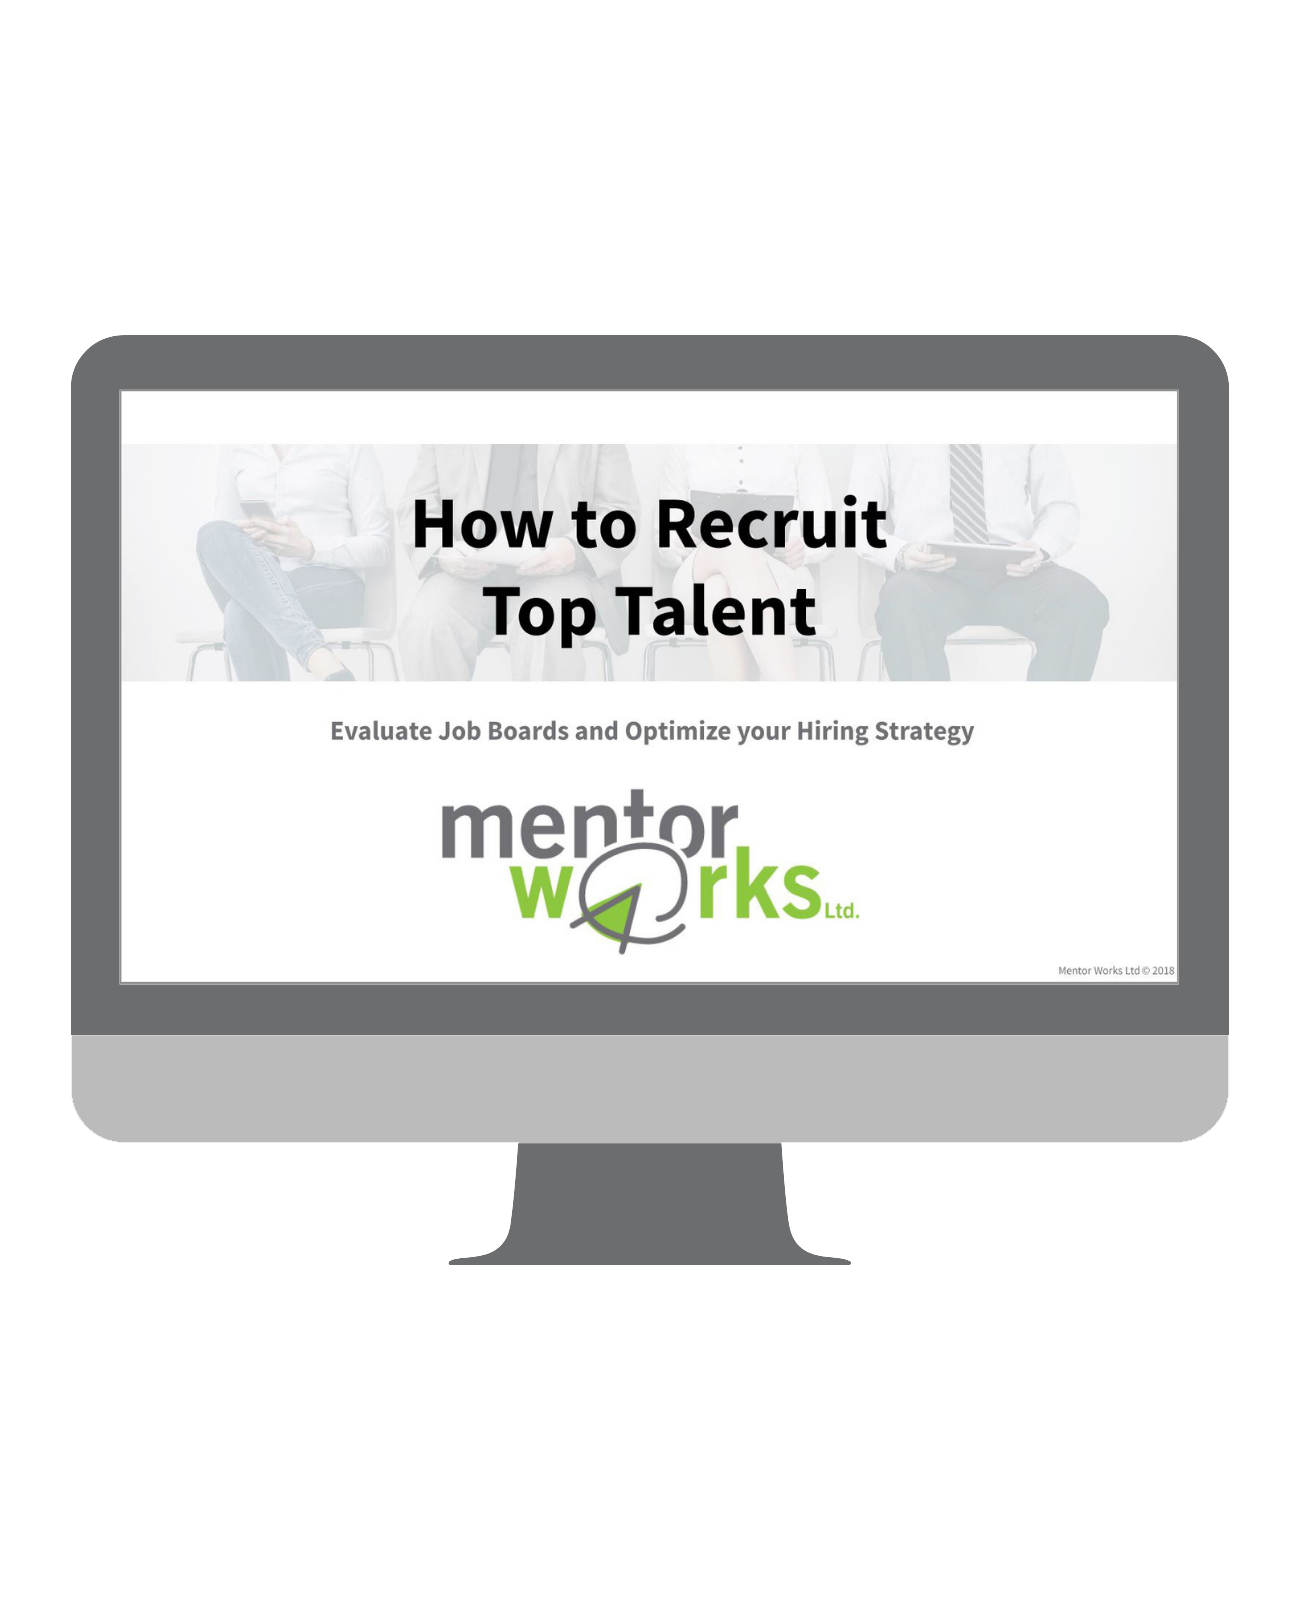 How to Recruit Top Talent-2